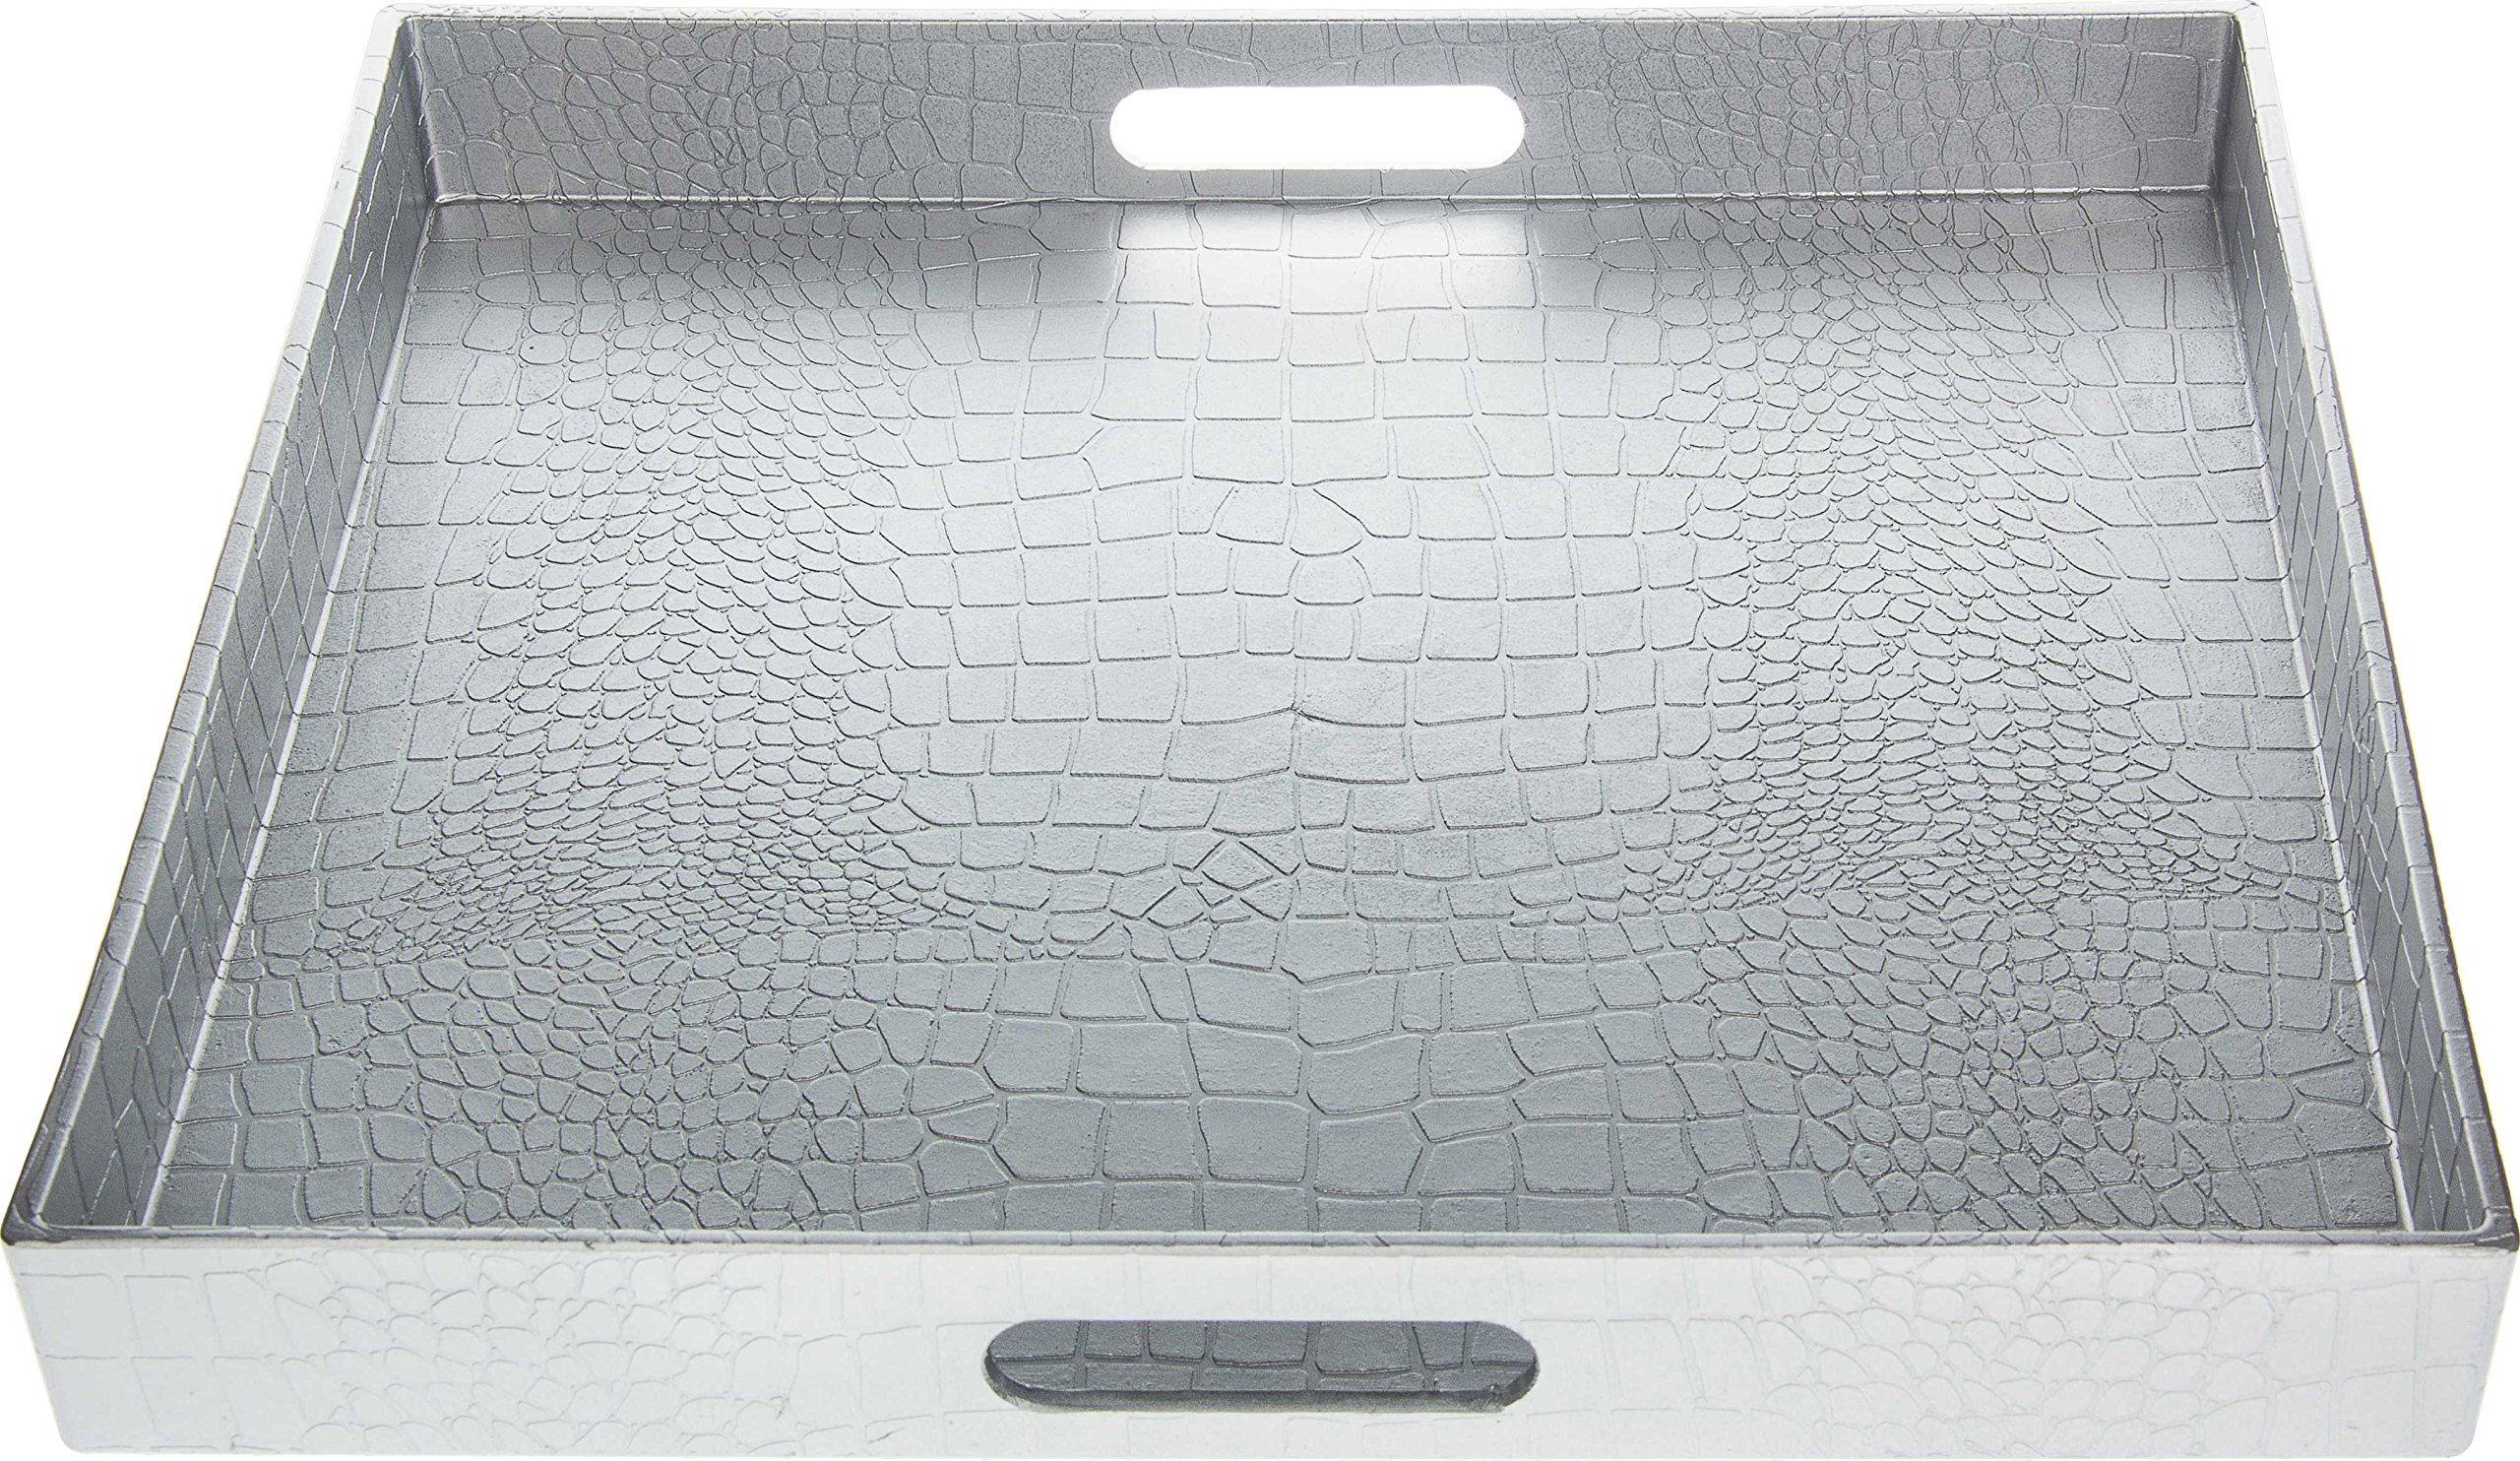 Fantastic:) Square Alligator Serving Tray with Matte Finish Design (1, Square Alligator Silver)